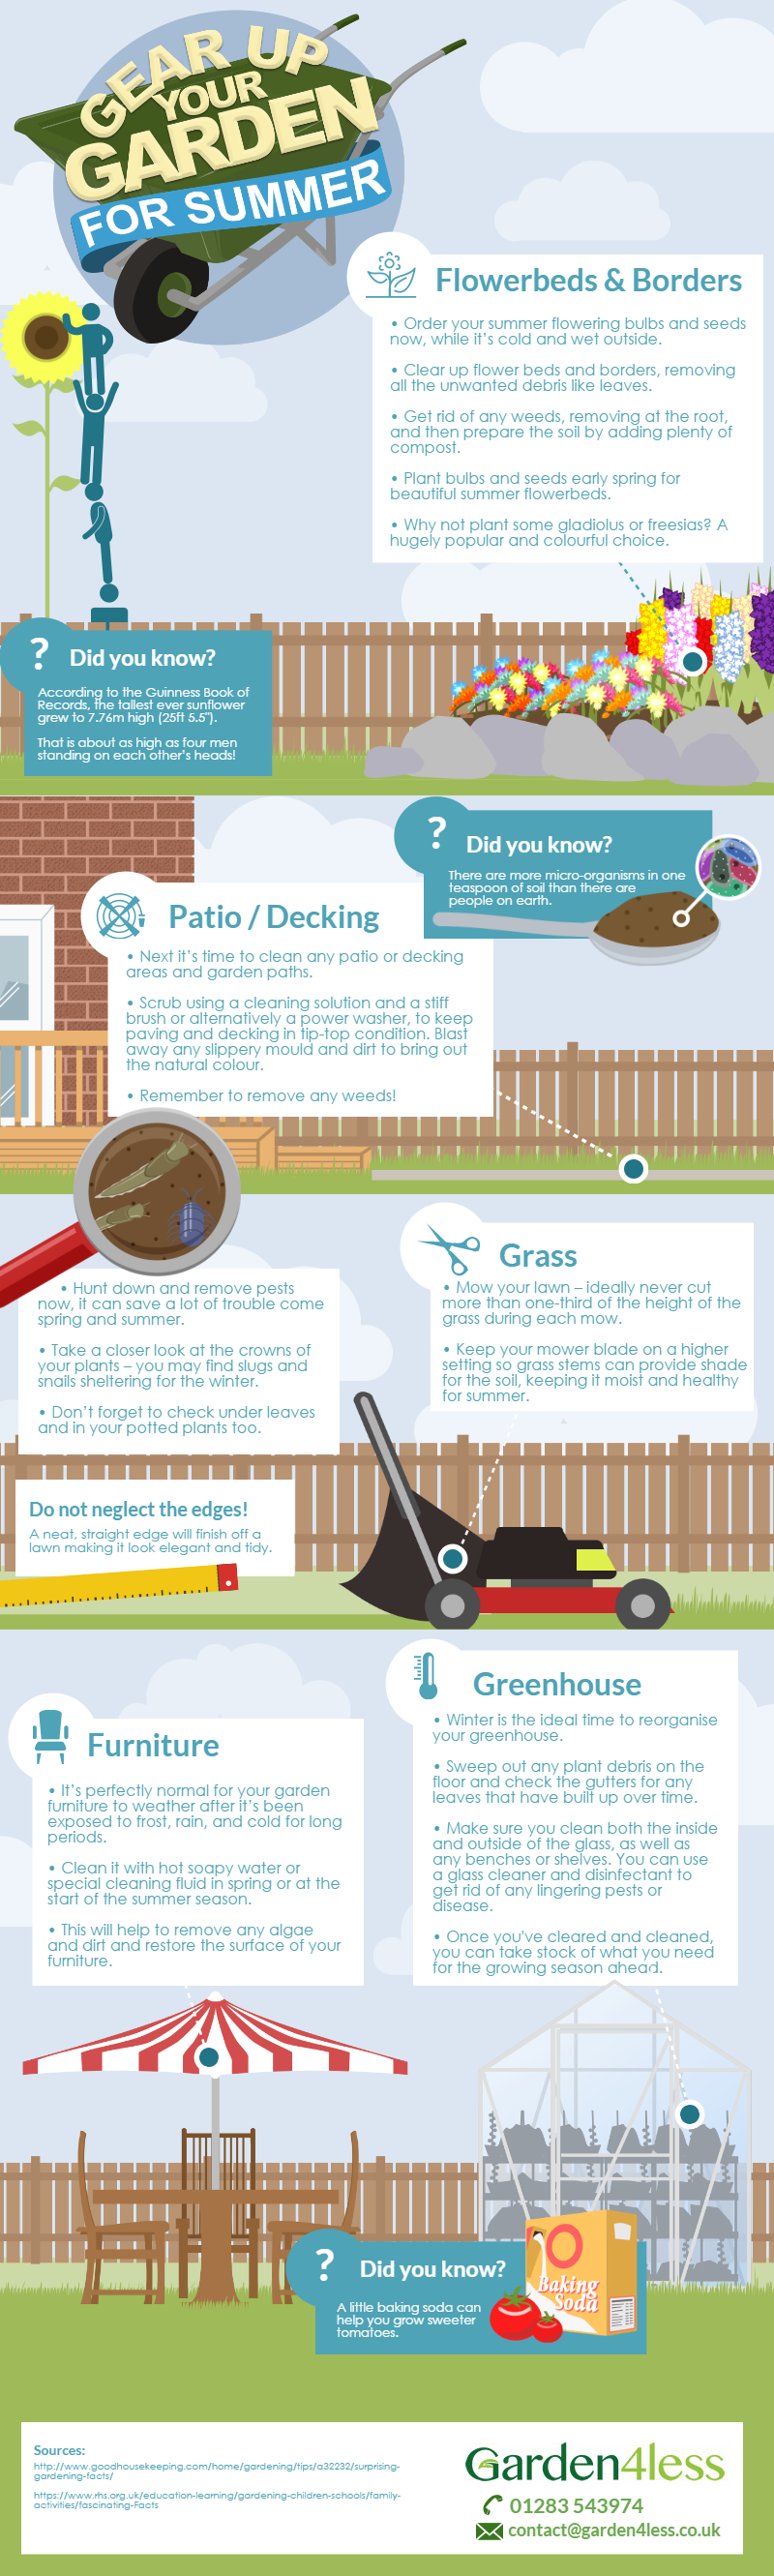 Gear Up Your Garden For Summer - Infographic